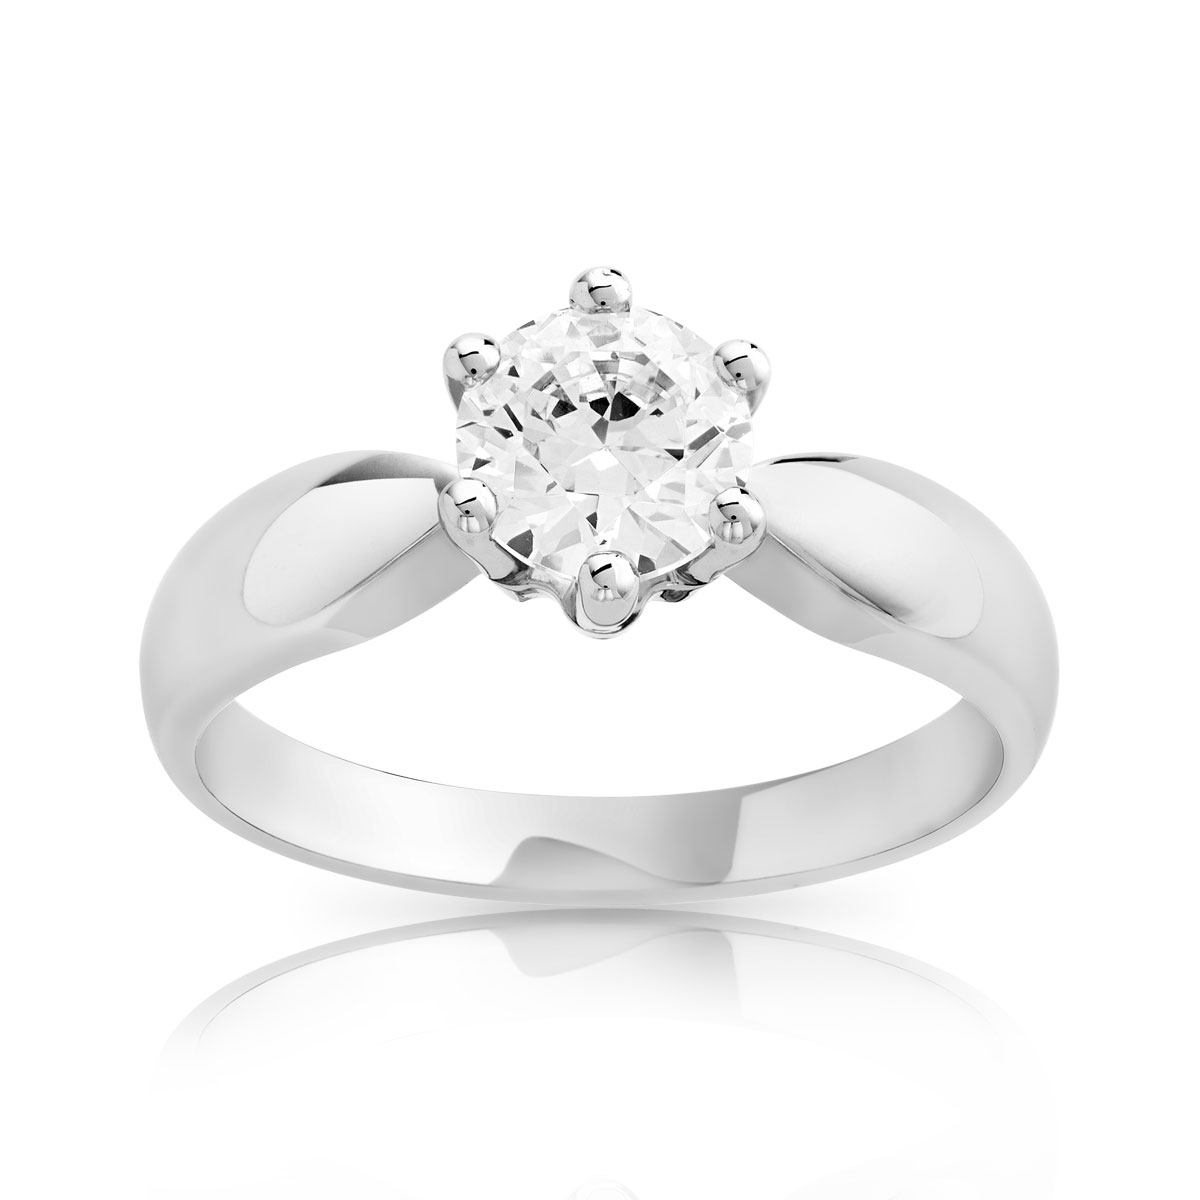 Bague Solitaire or 750 blanc diamant 0.80 ct - vue V1